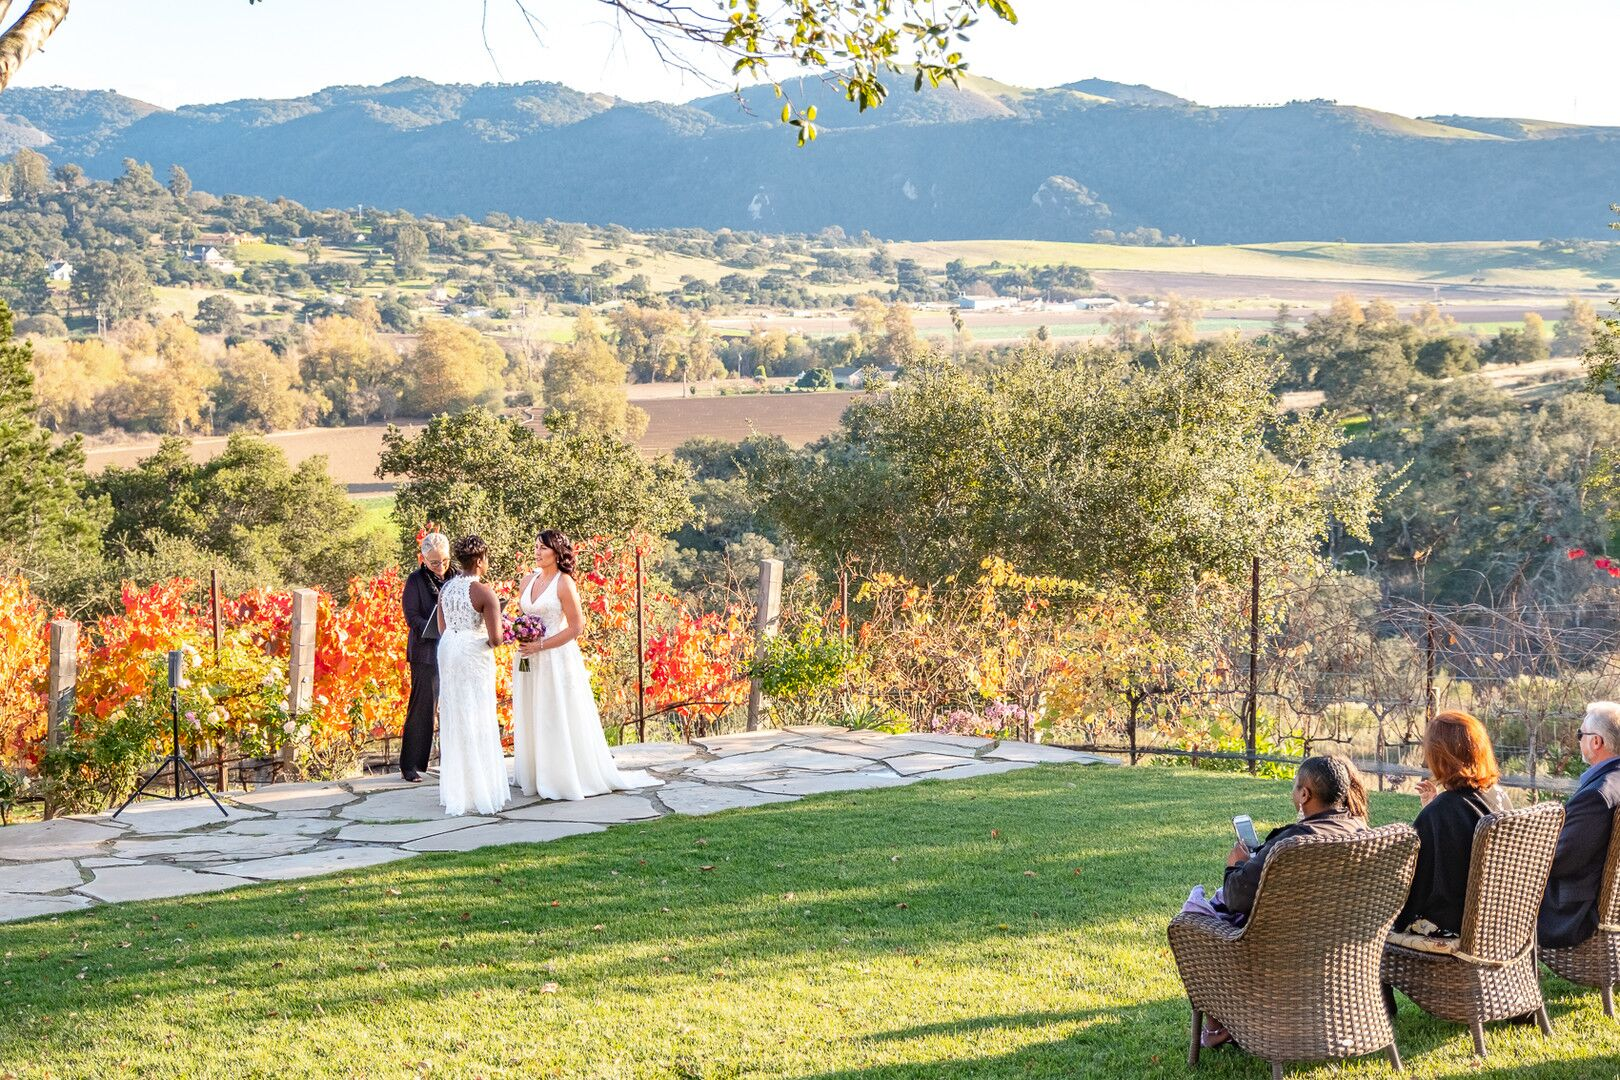 www.santabarbarawedding.com | Venue: The Casitas of Arroyo Grande | Photographer: Renoda Campbell Photography | Second Shooter: John Patrick Images |  Ceremony with Scenic View